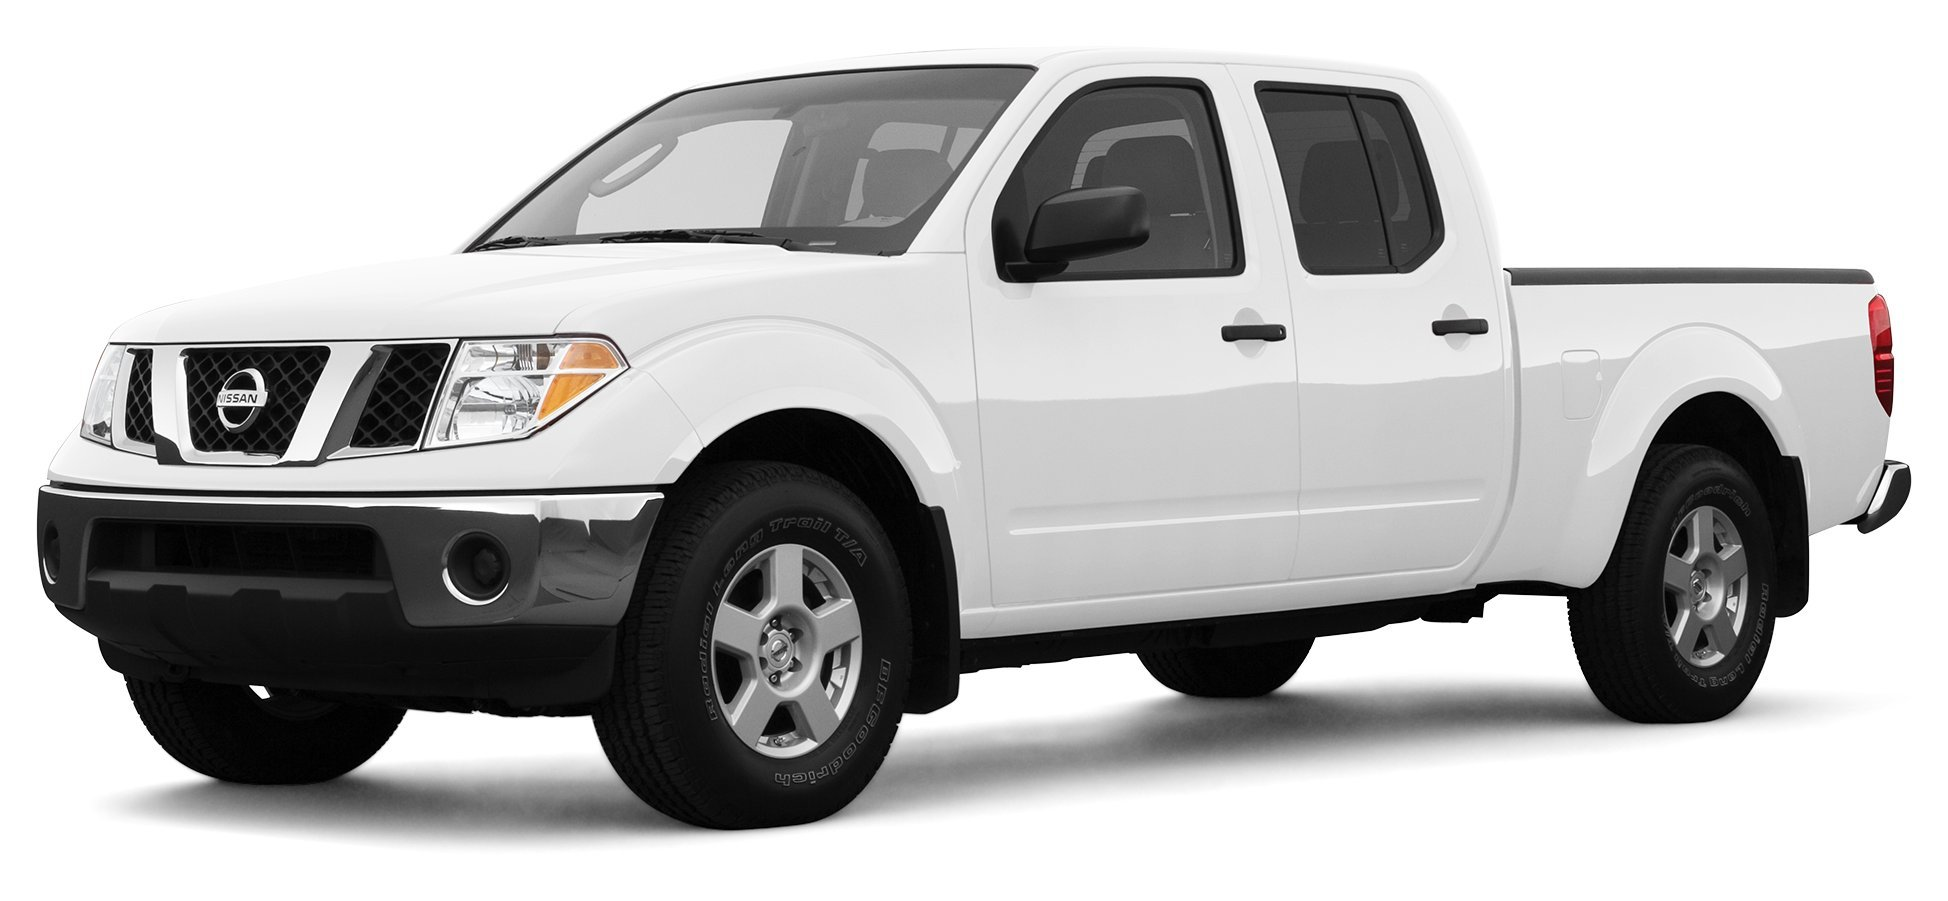 Amazon 2007 nissan frontier reviews images and specs vehicles 2007 nissan frontier le 2 wheel drive crew cab long wheelbase automatic transmission vanachro Gallery